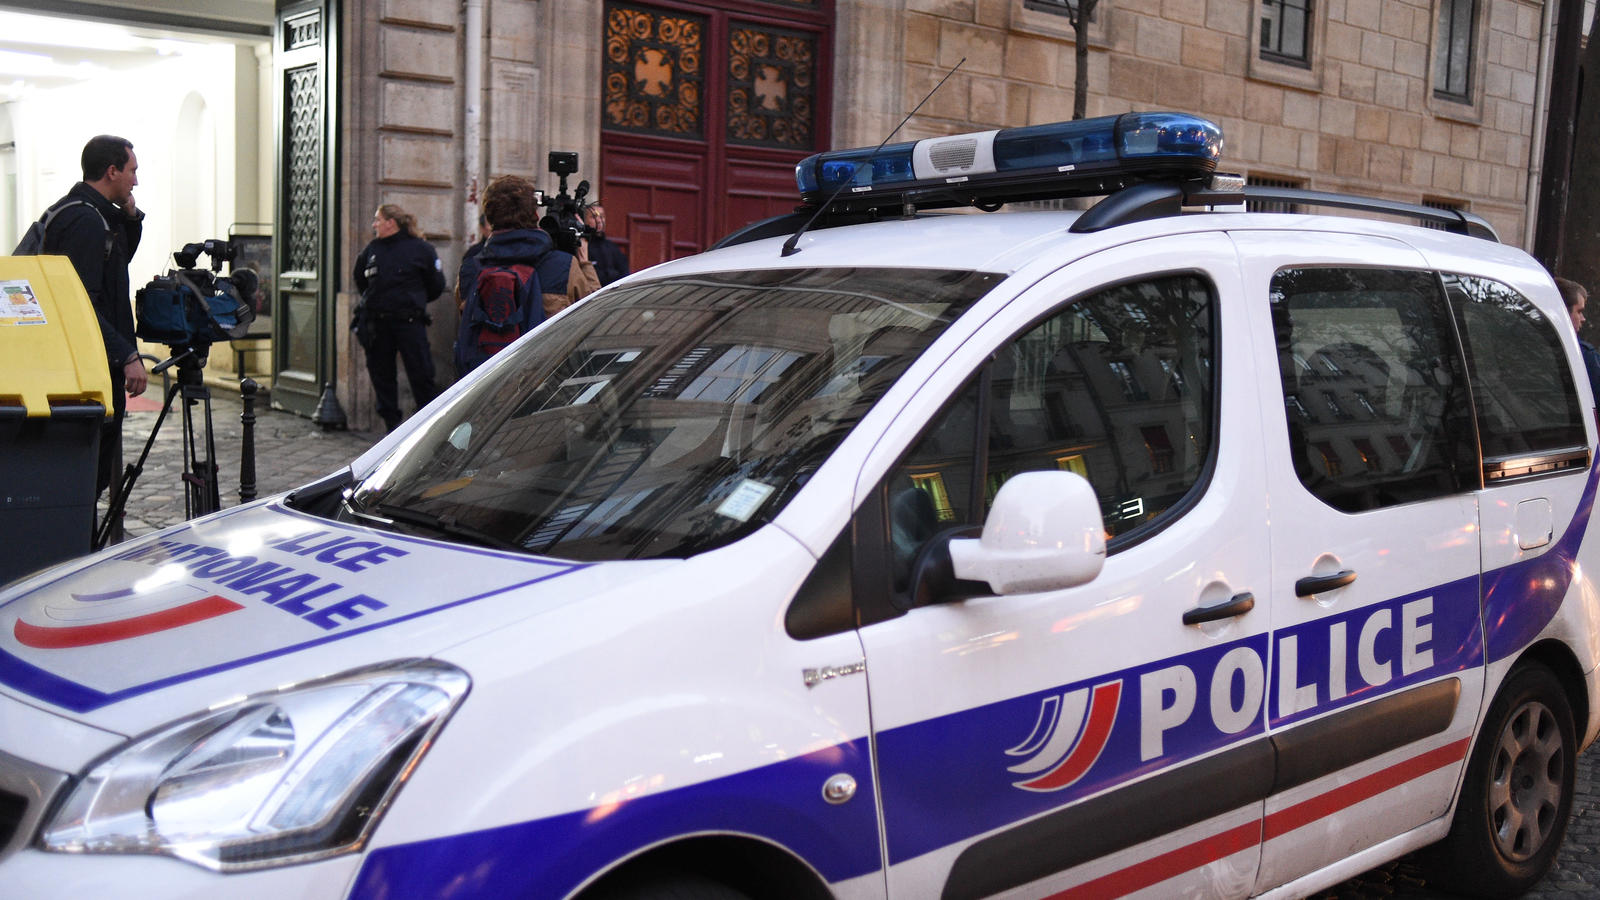 BREAKING NEWS:Kim Kardashian is held up by gunpoint at her Paris apartment in the early hours of sunday morning, General views of police attending her apartment, detectives inside photographing the scene.